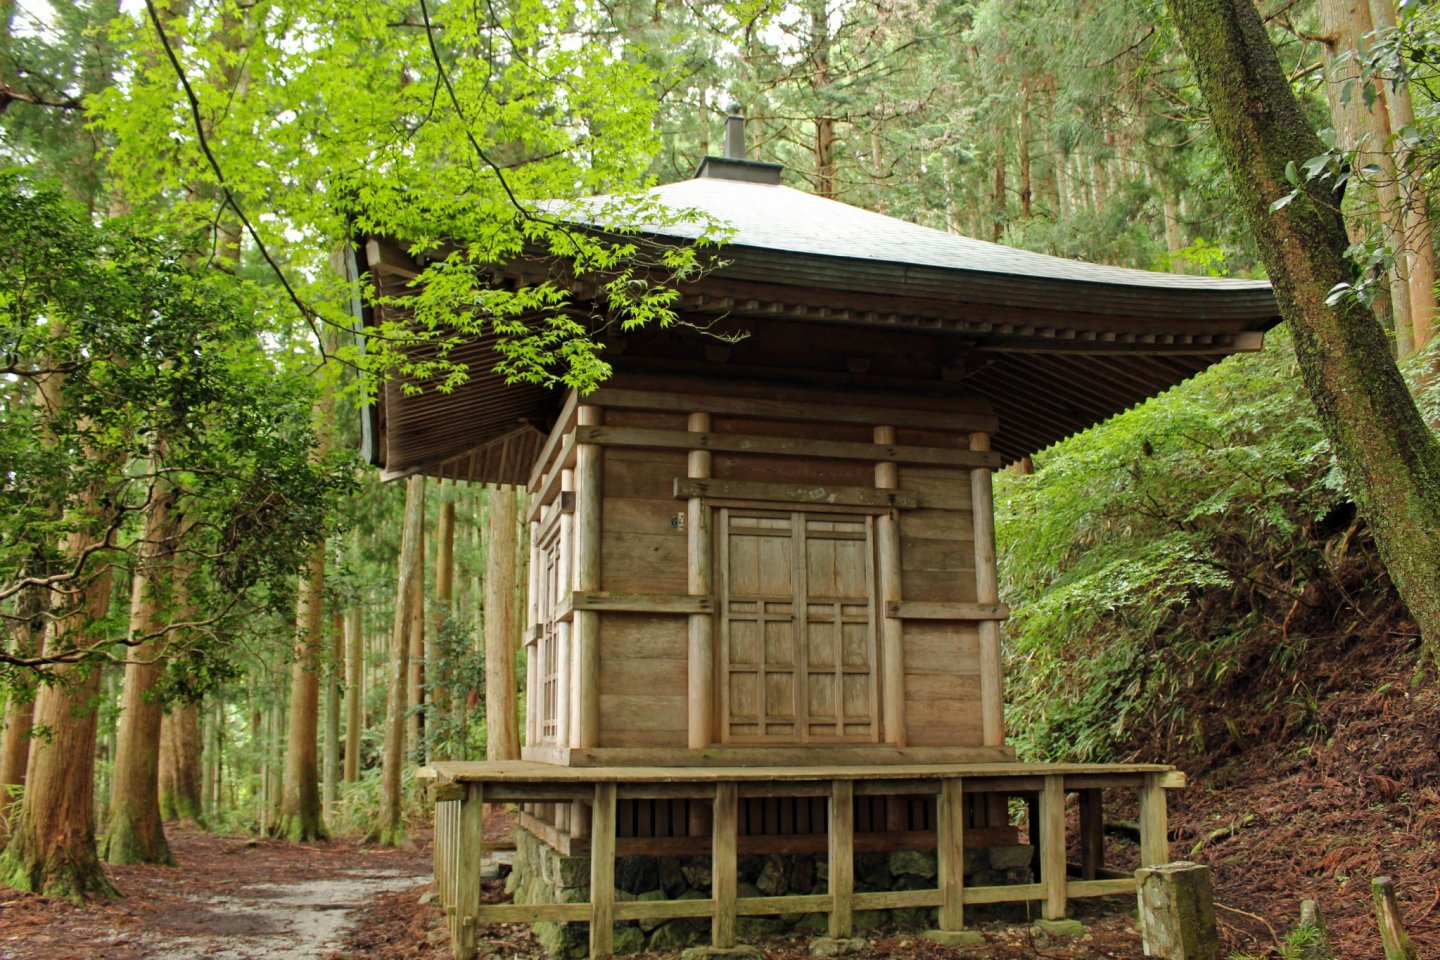 The Kakure-to Hideout Pagoda